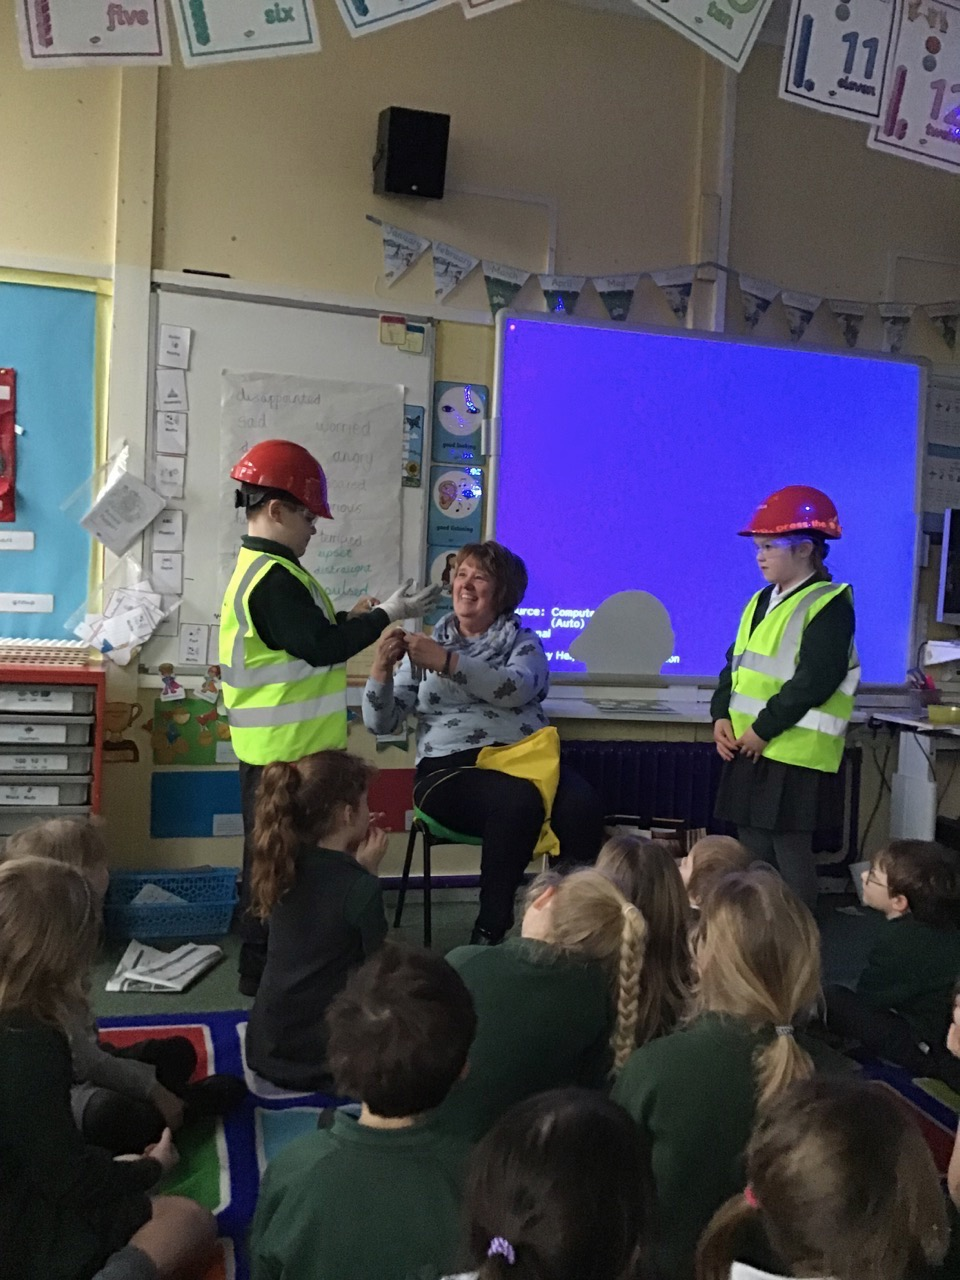 Y1/2's visitor from a recycling centre